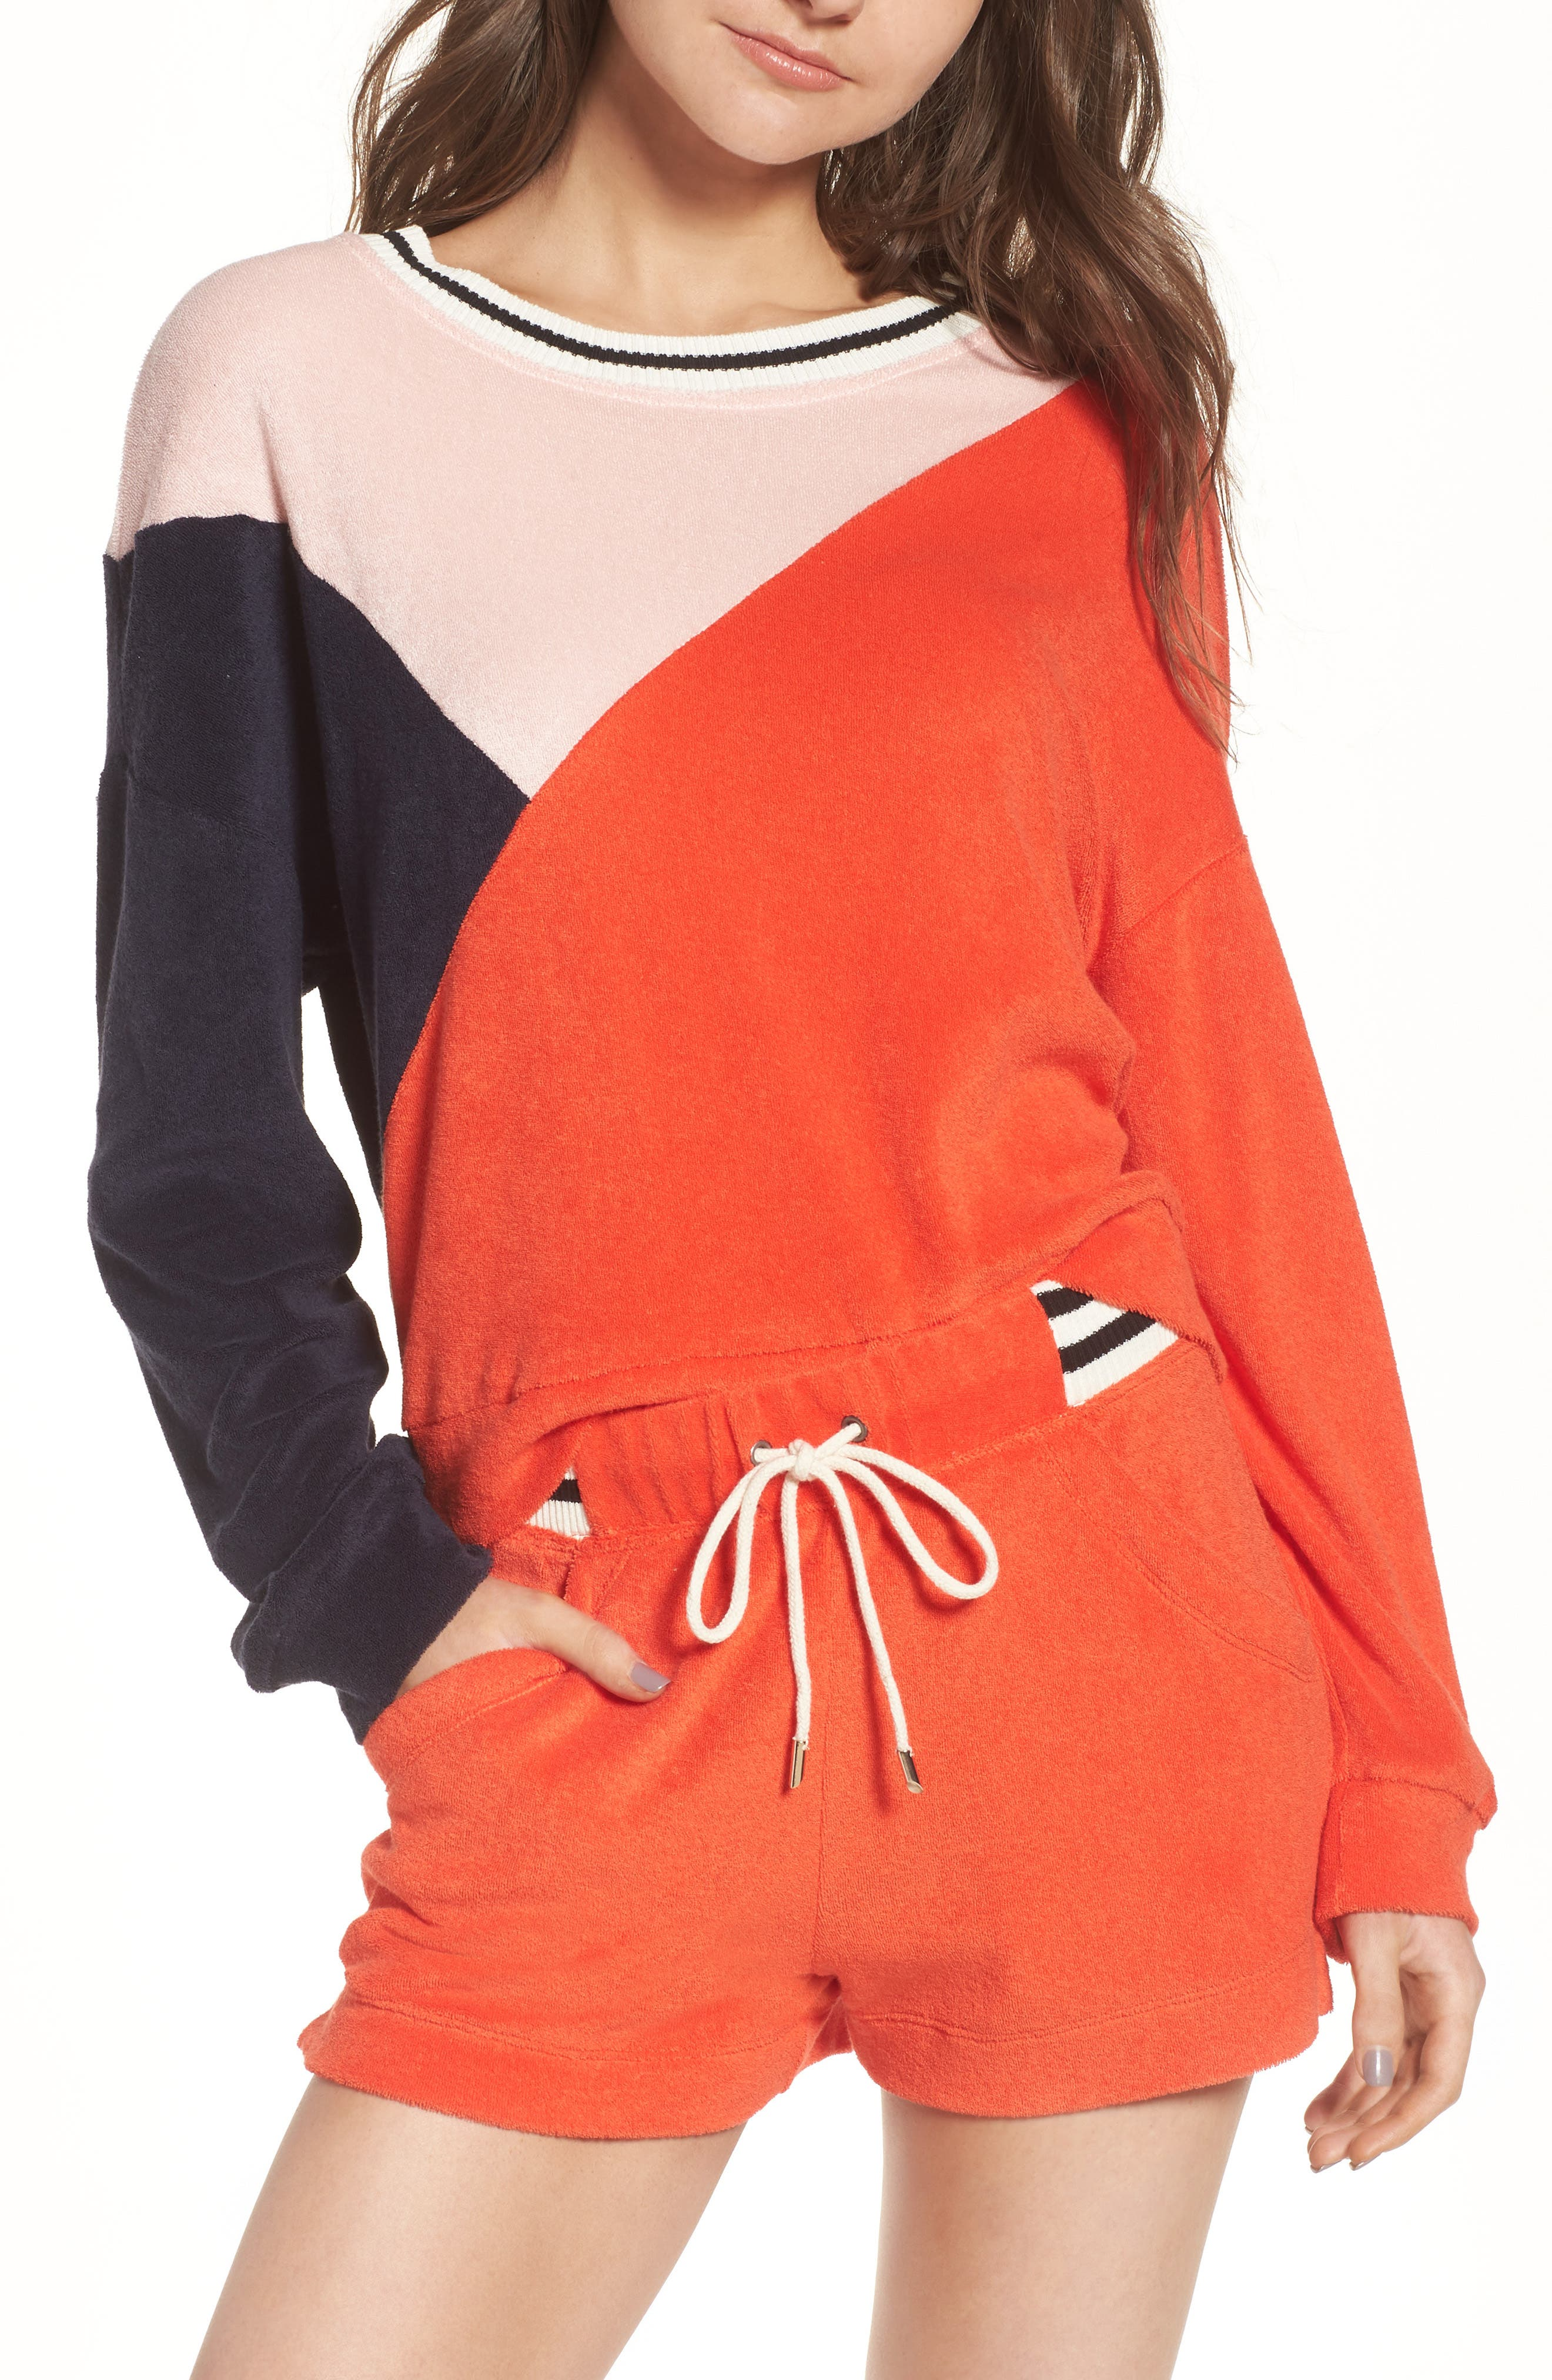 x Margherita Sportivo French Terry Sweatshirt,                         Main,                         color, Red